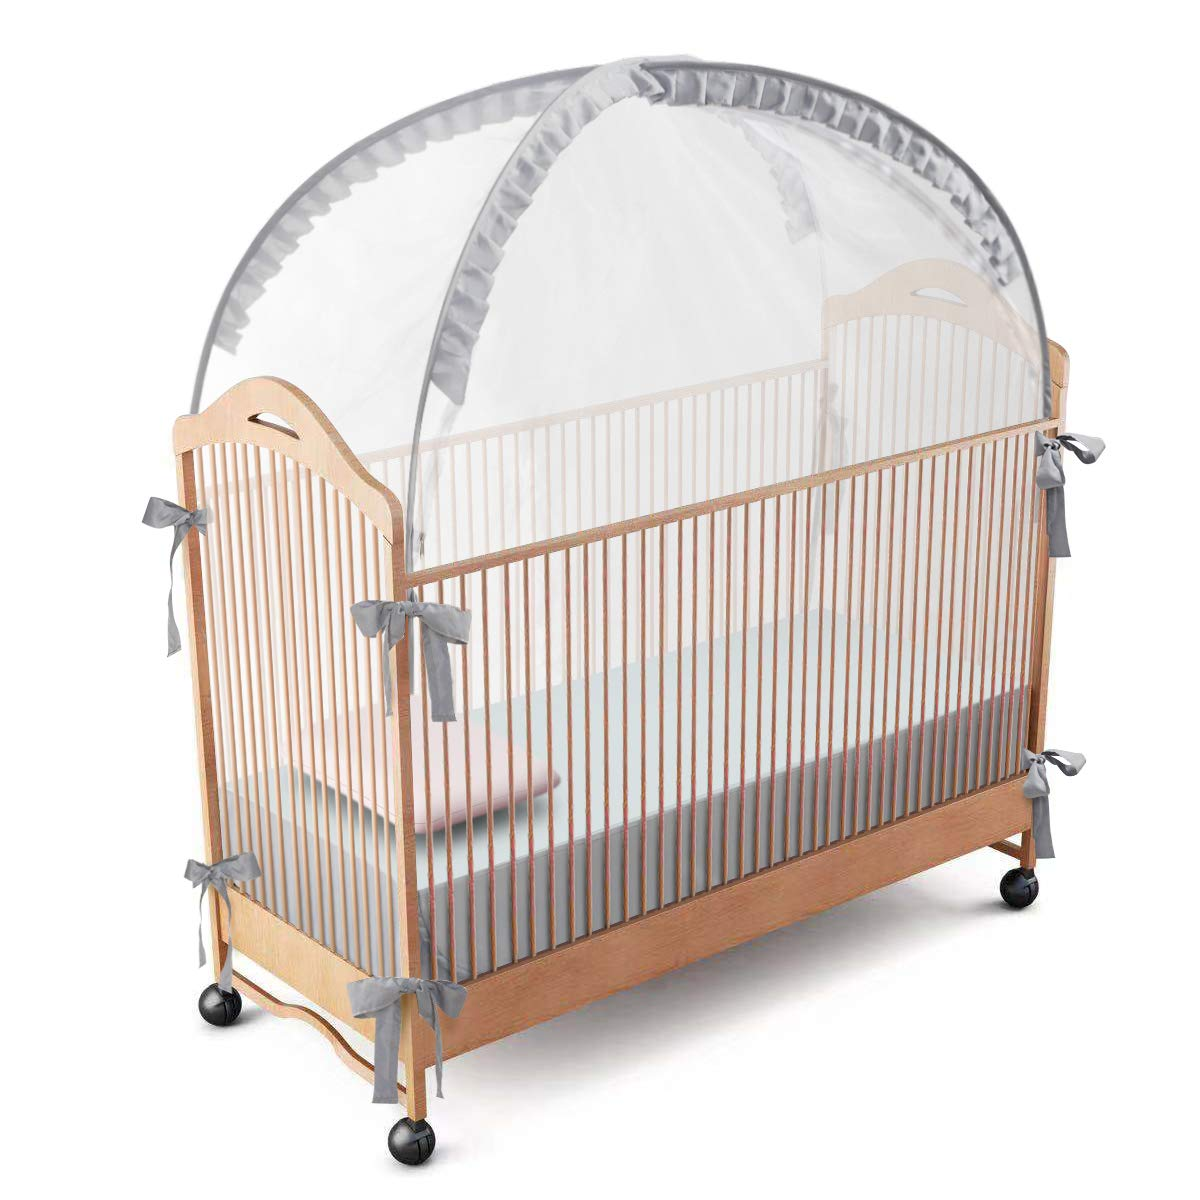 RUNNZER Baby Crib Safety Pop Up Tent, Crib Net to Keep Baby in, Crib Canopy Cover to Keep Baby from Climbing Out by RUNNZER